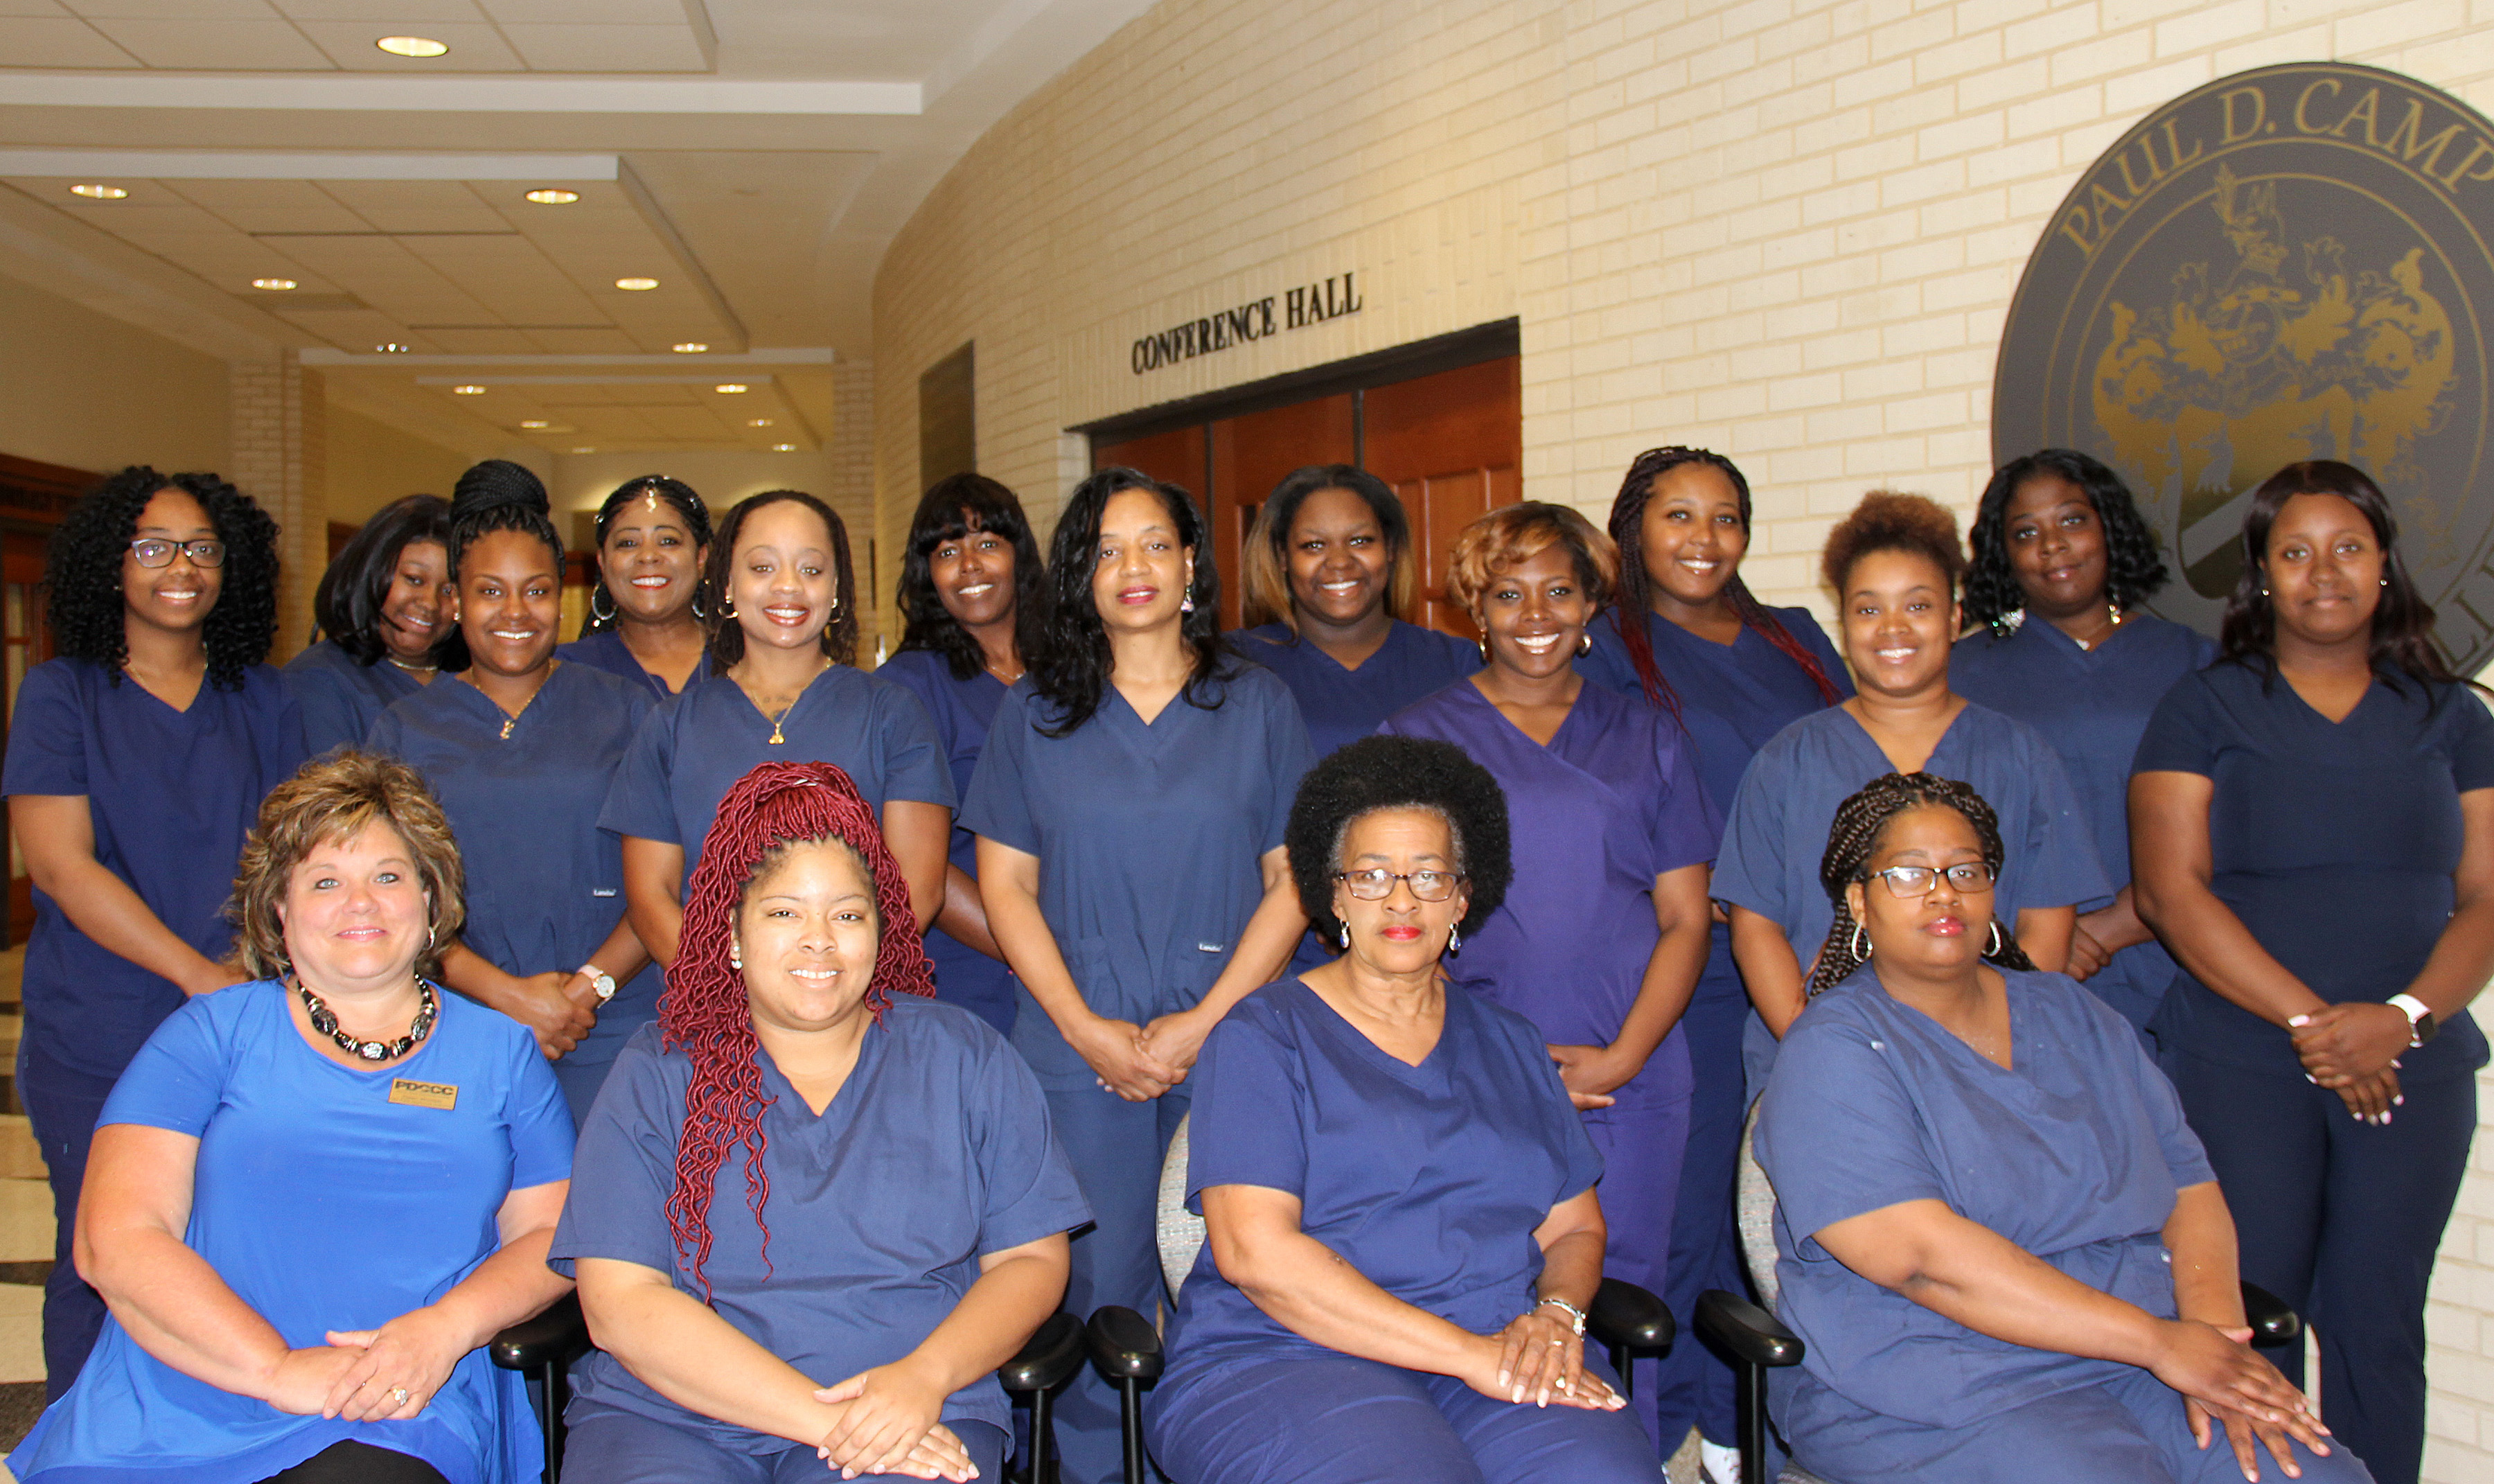 Paul D. Camp Community College Fast Track Healthcare program graduates 16